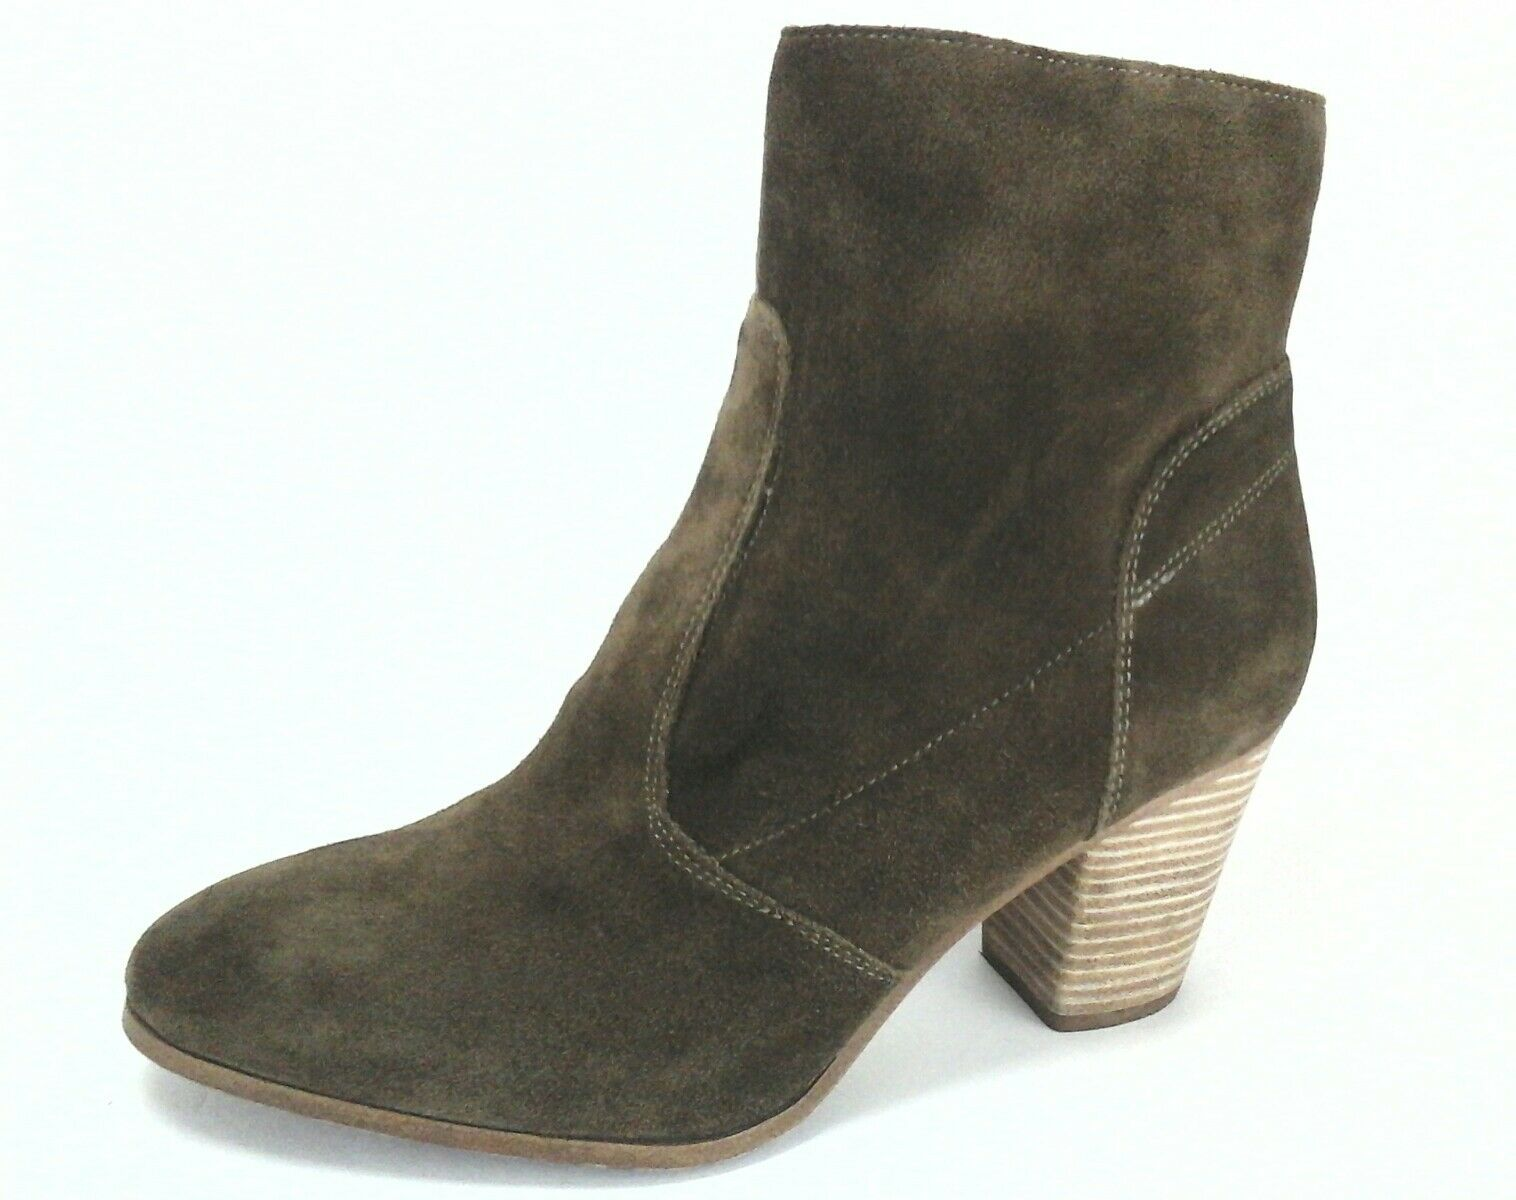 VINCE CAMUTO Ankle Boots Brown Suede Bootie Heels Women's US